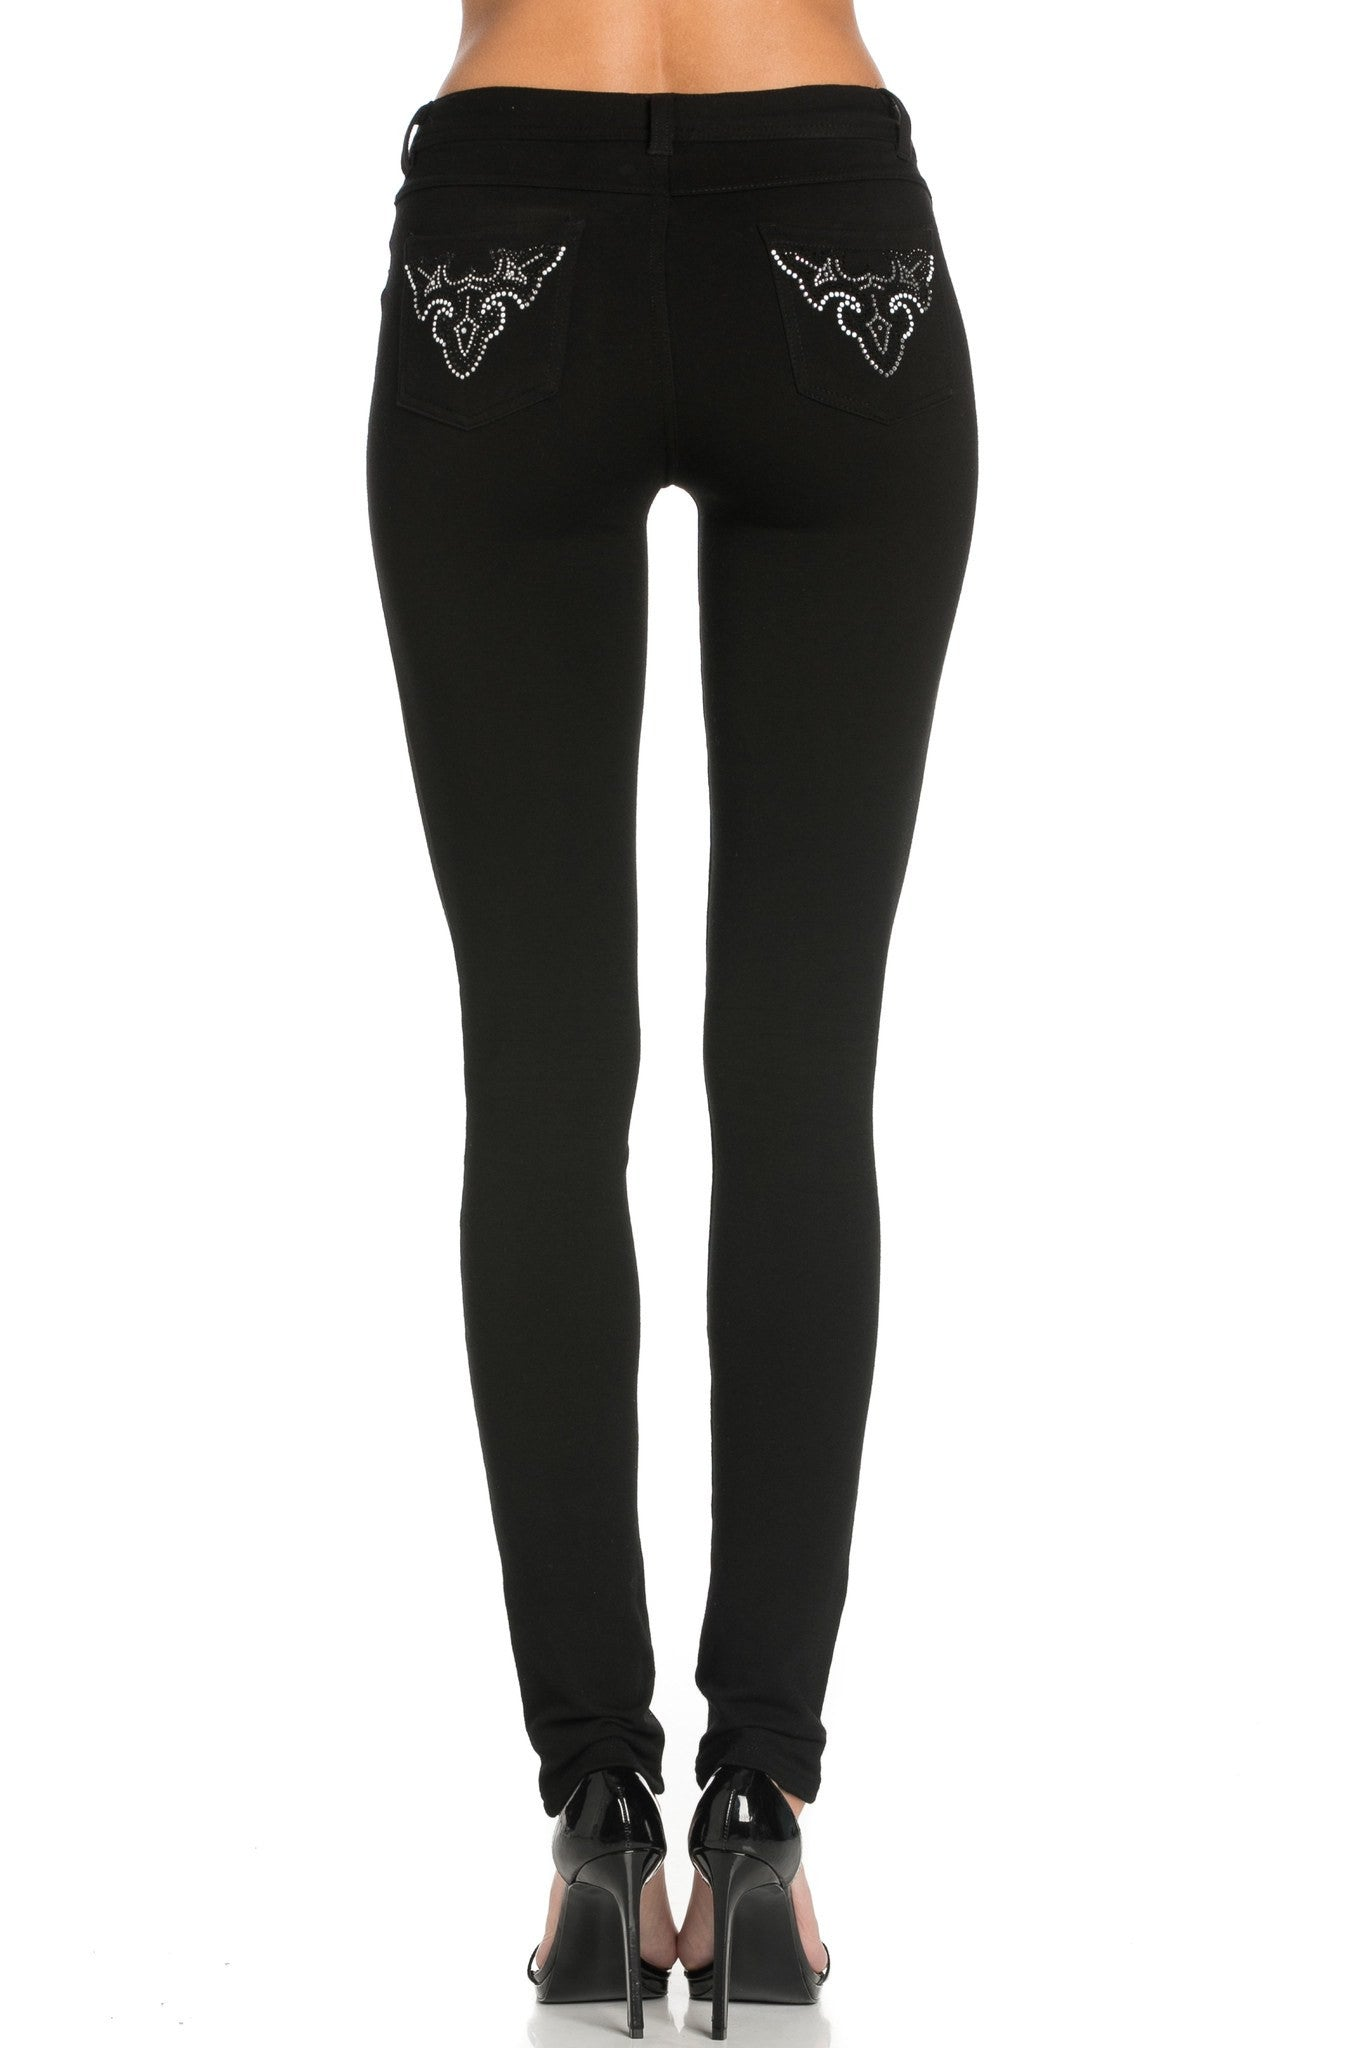 Embellished Stretch Skinny Knit Jegging Pants (Triple Lily) - Poplooks